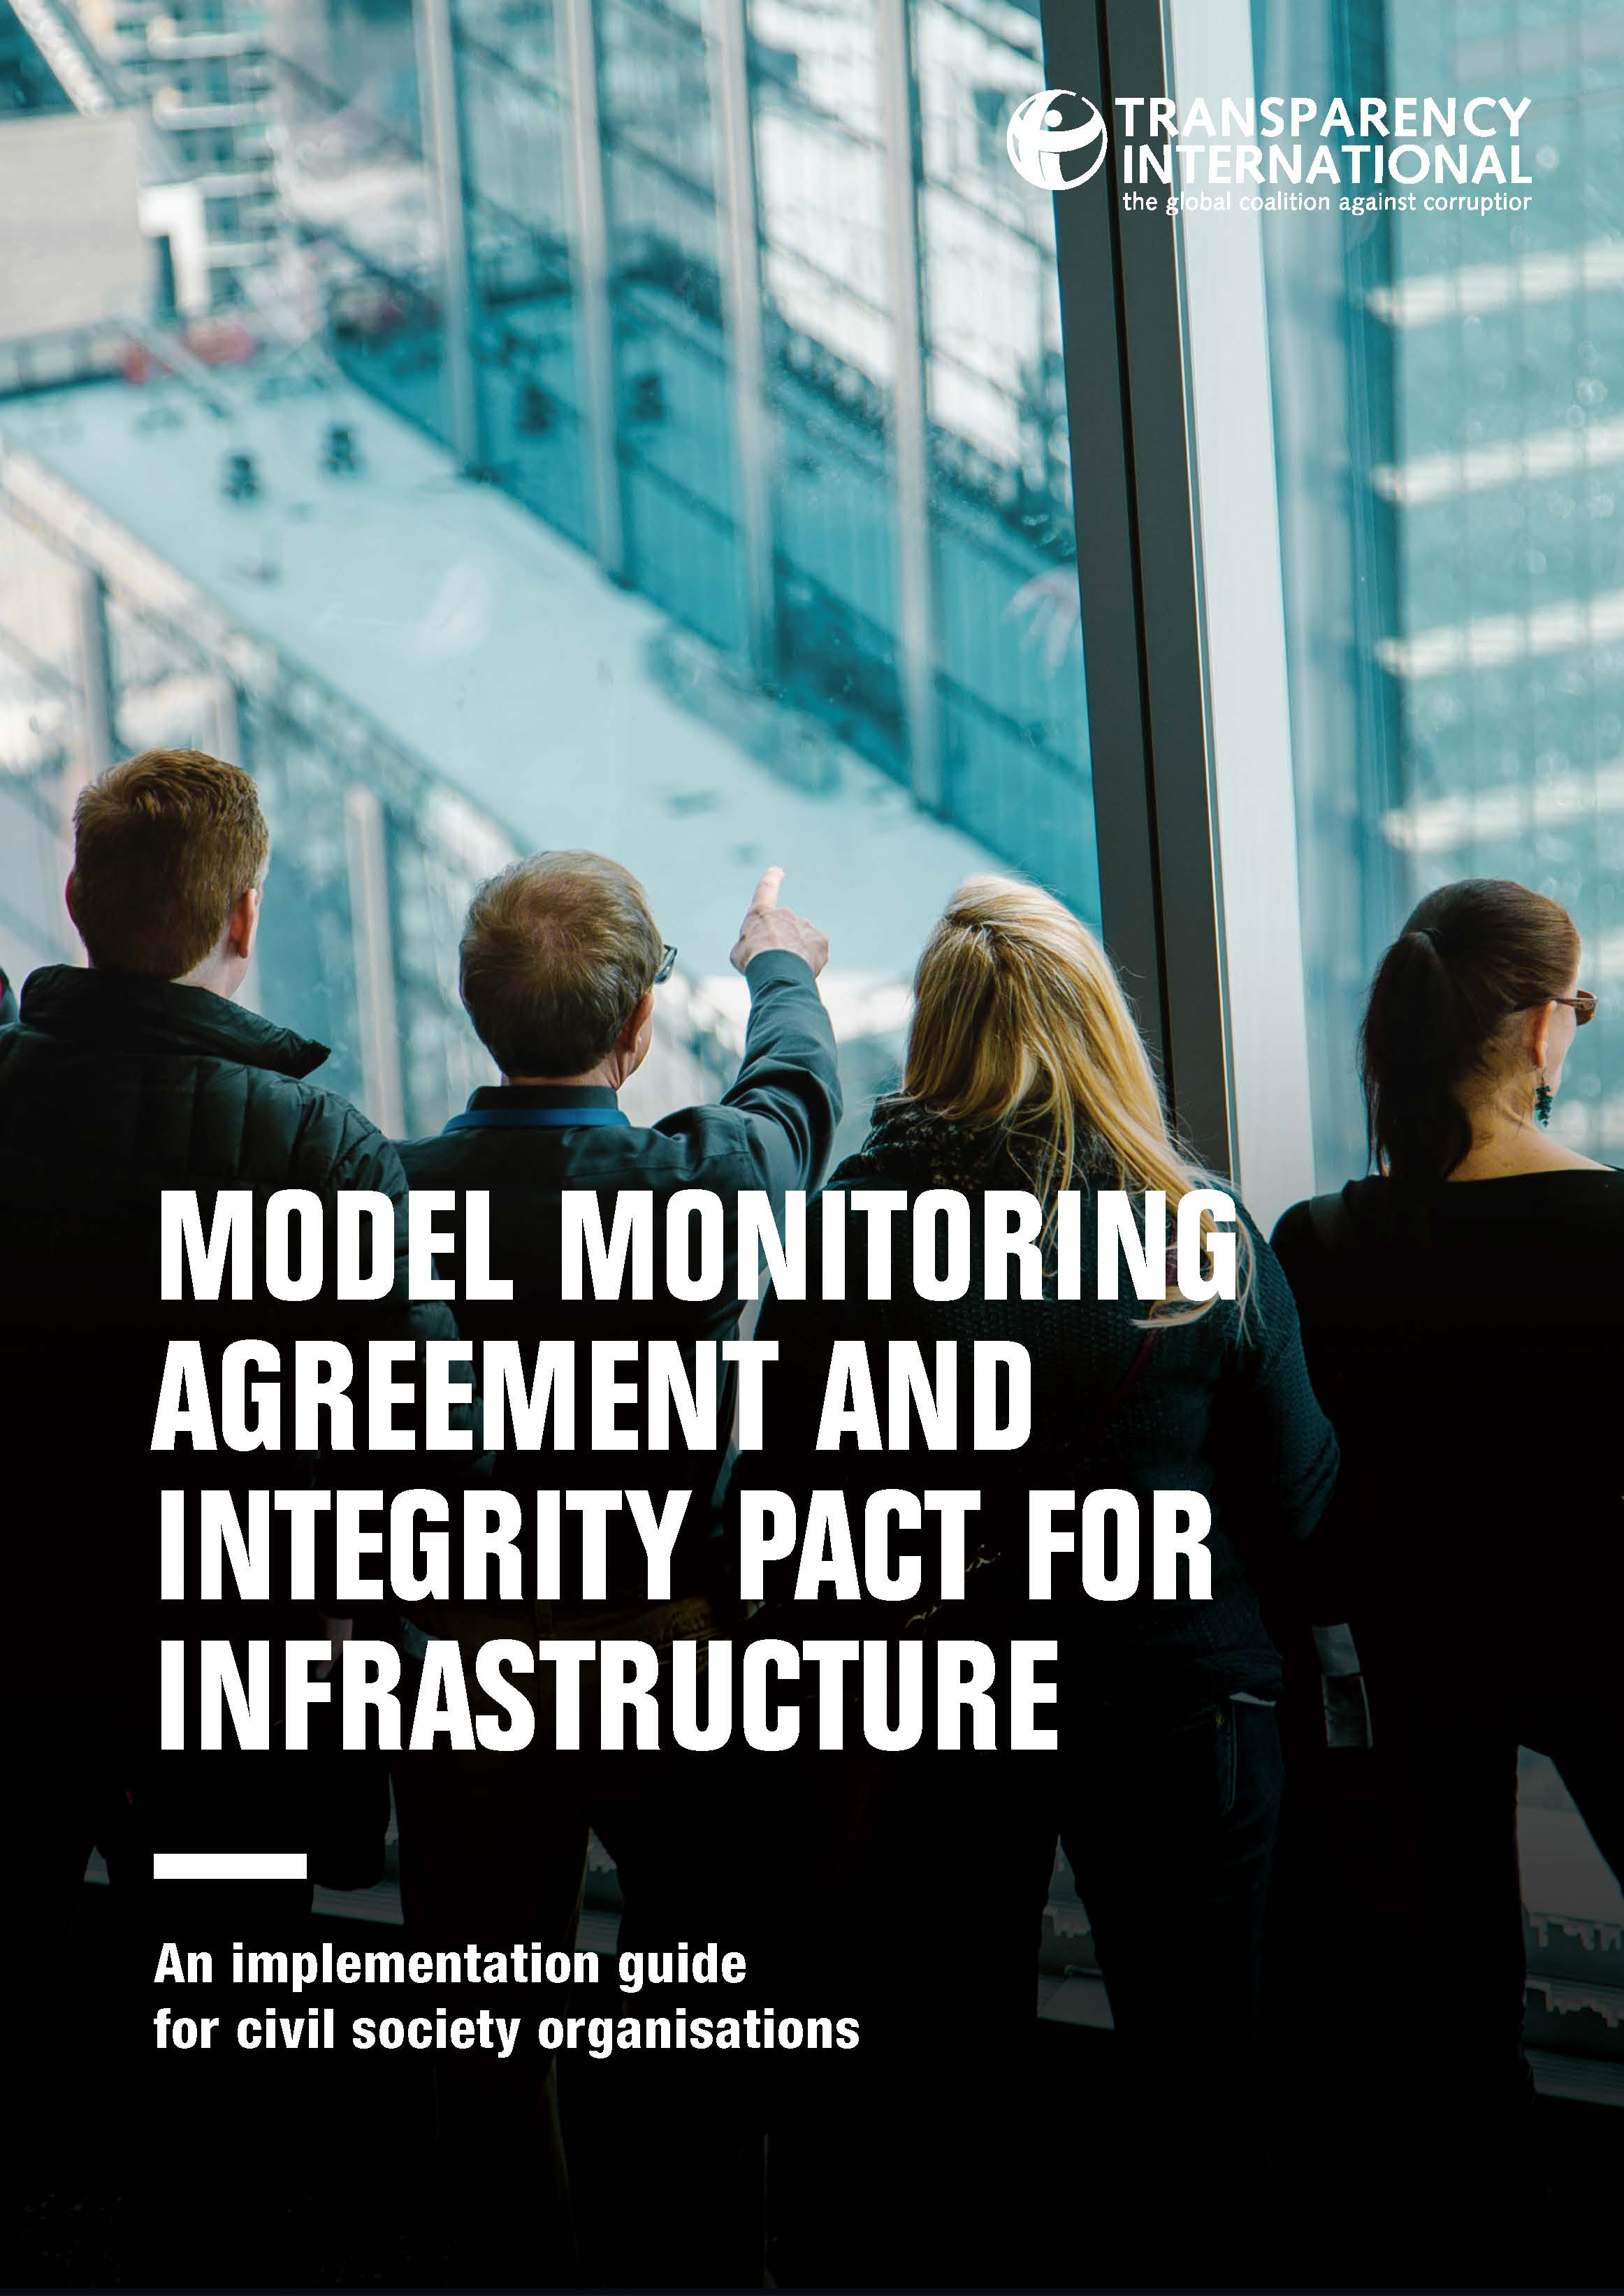 Pages from TI_Model Monitoring_Integrity_Pact_Infrastructure_2018.jpg